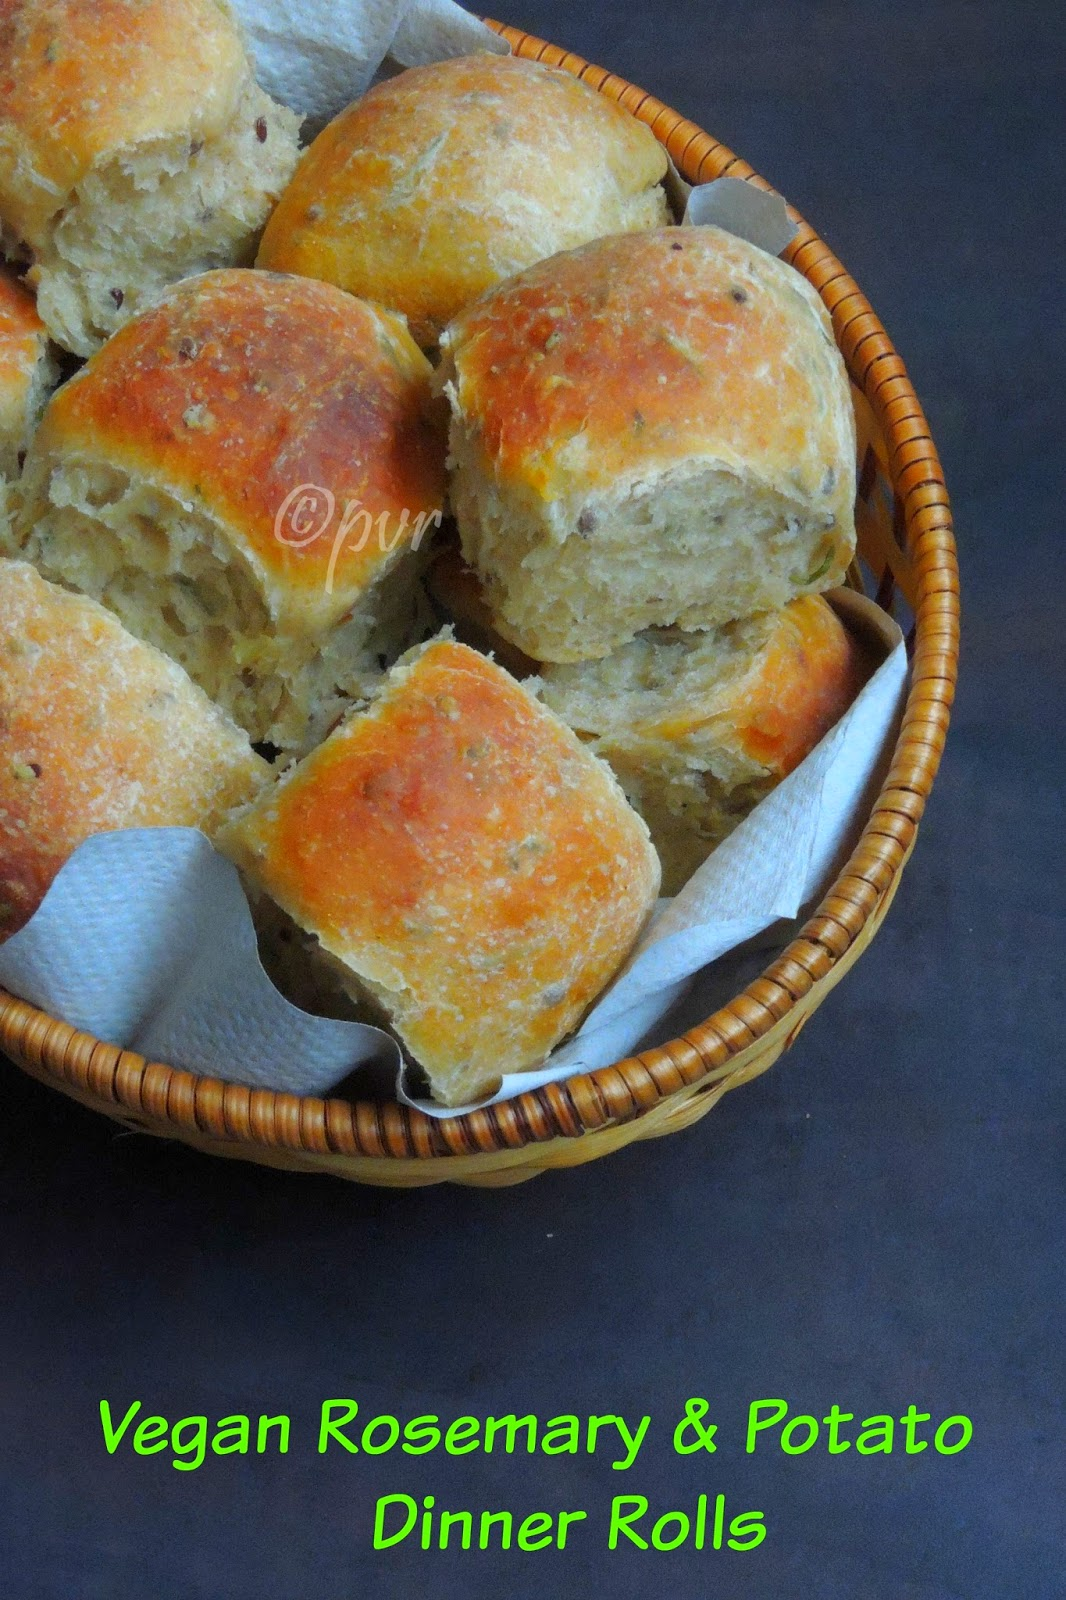 Rosemary & Potato Dinner Rolls